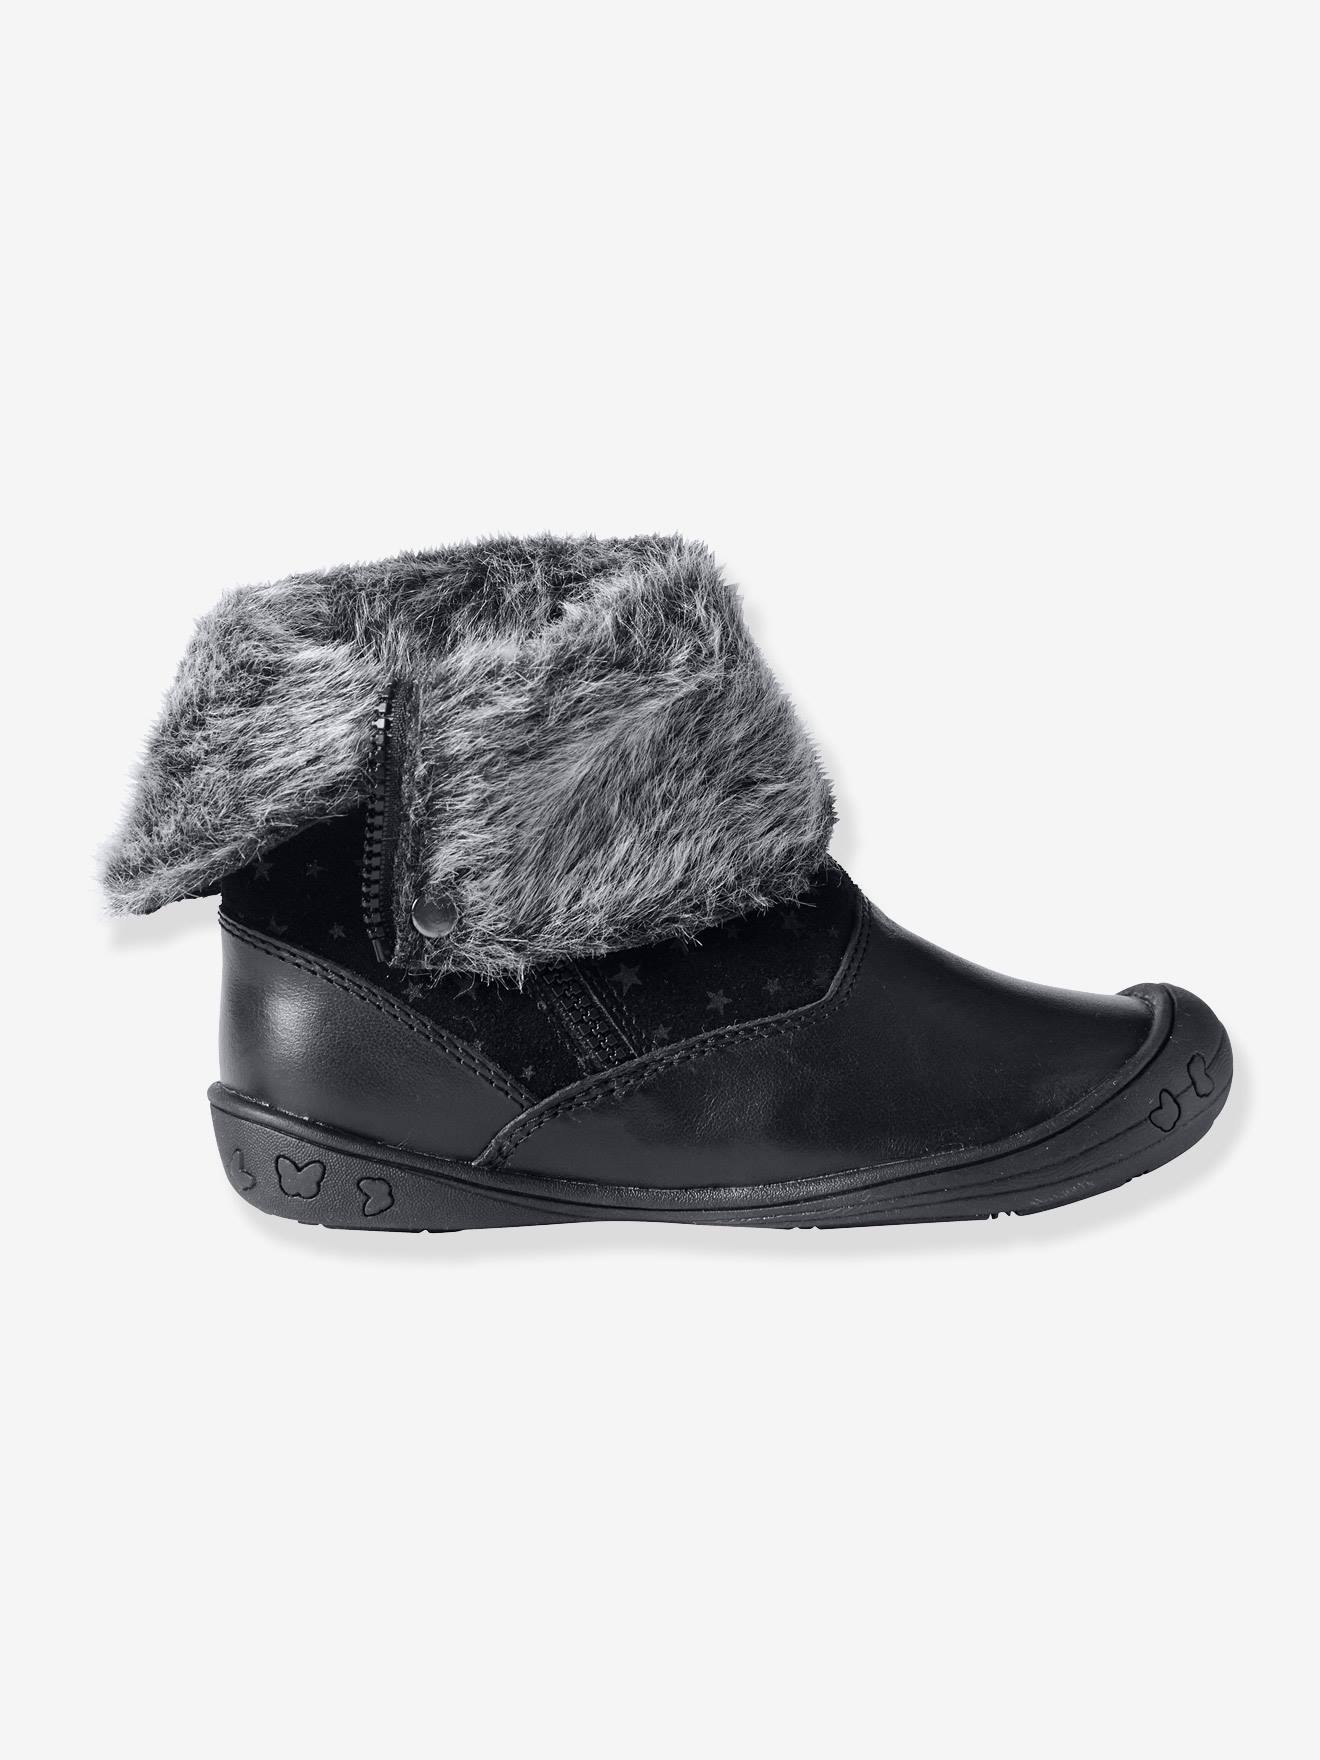 buy popular details for outlet store sale Girls' Leather Boots - black dark all over printed, Shoes